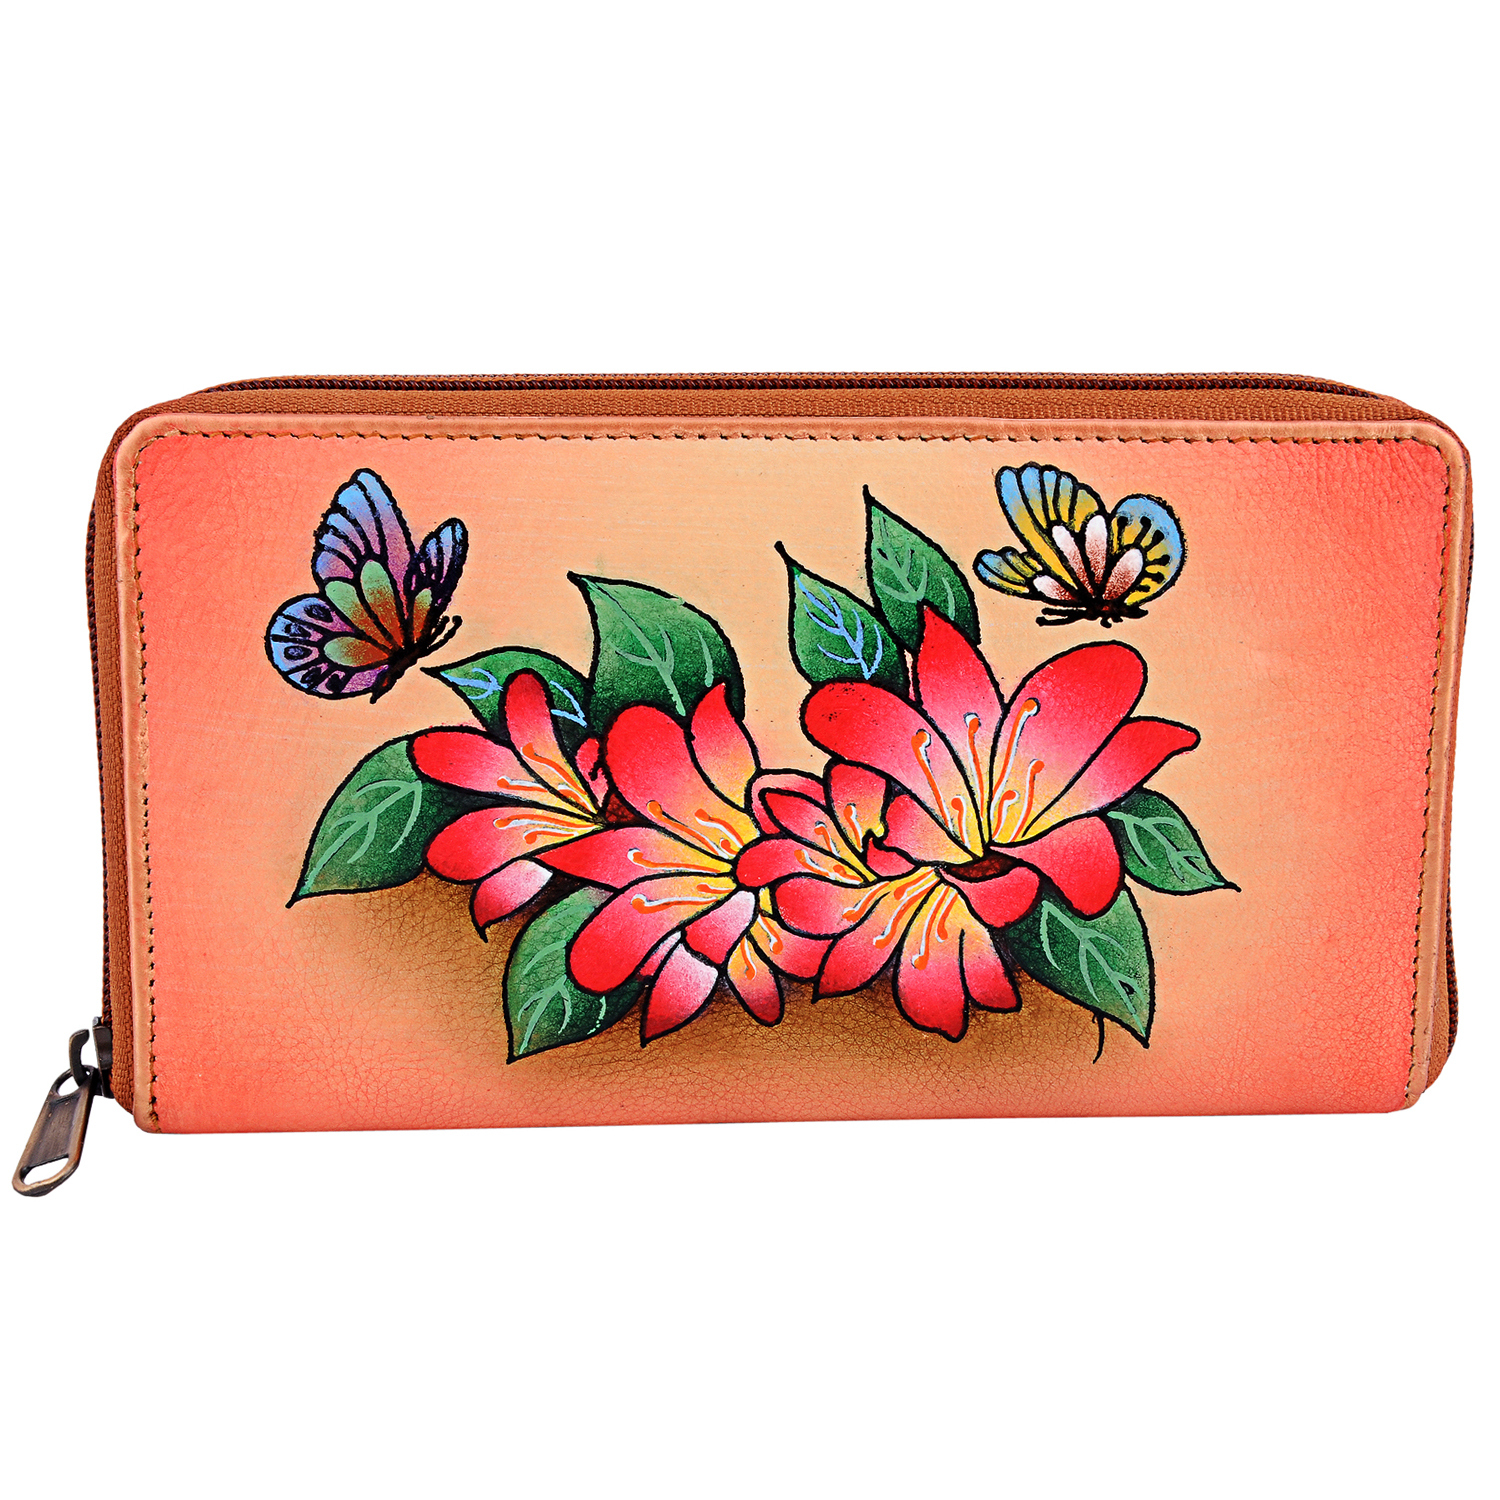 ZINT Hand Painted Leather Women's Wallet